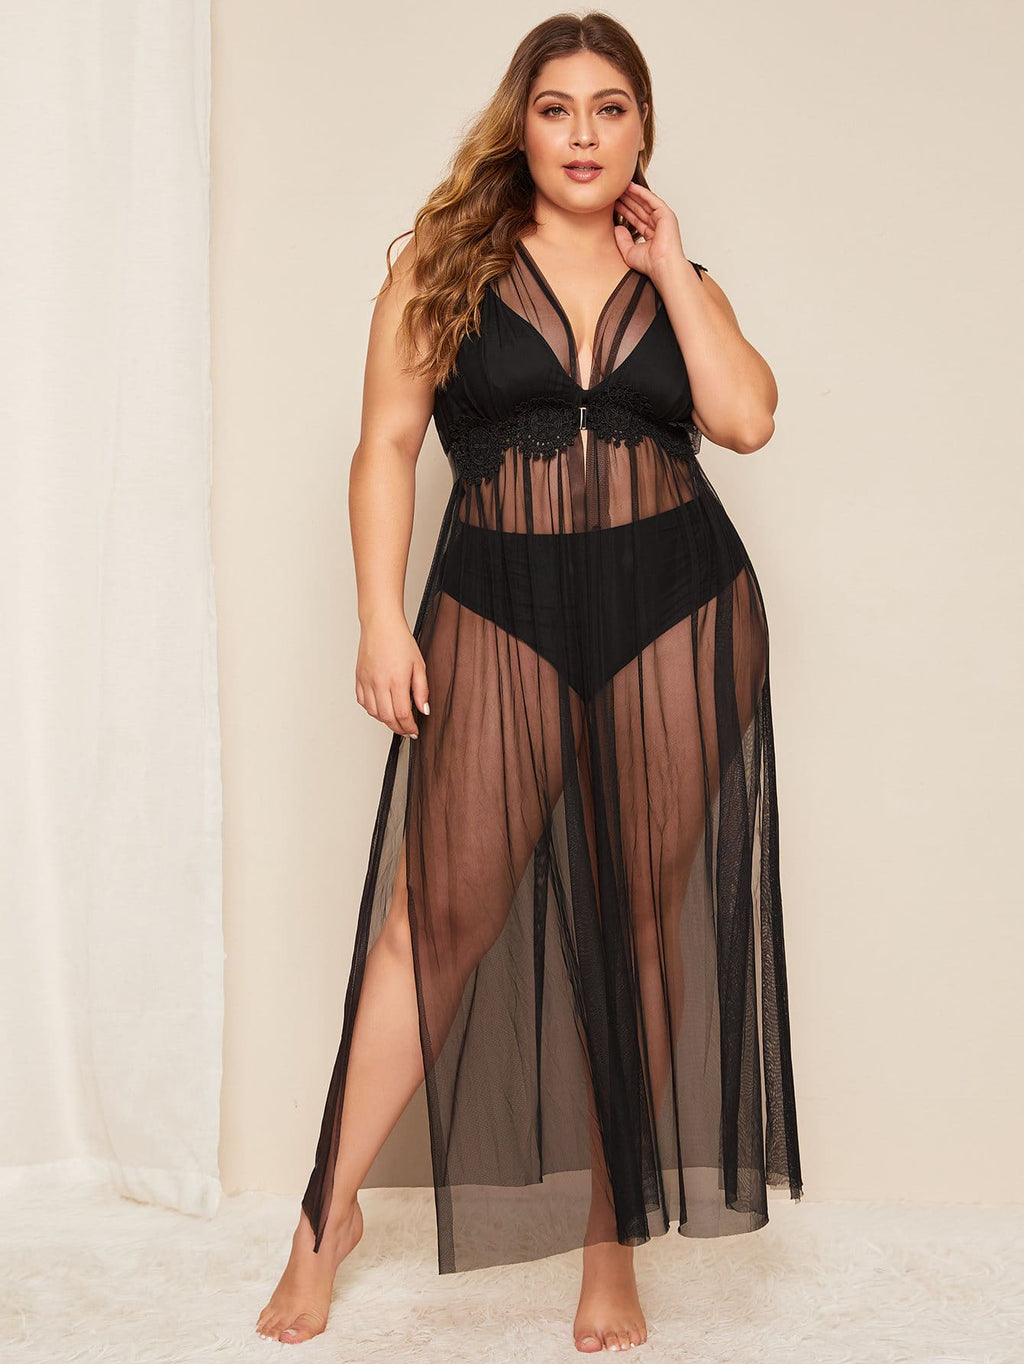 Plus Size Sheer Mesh Robe With Belt & Thong